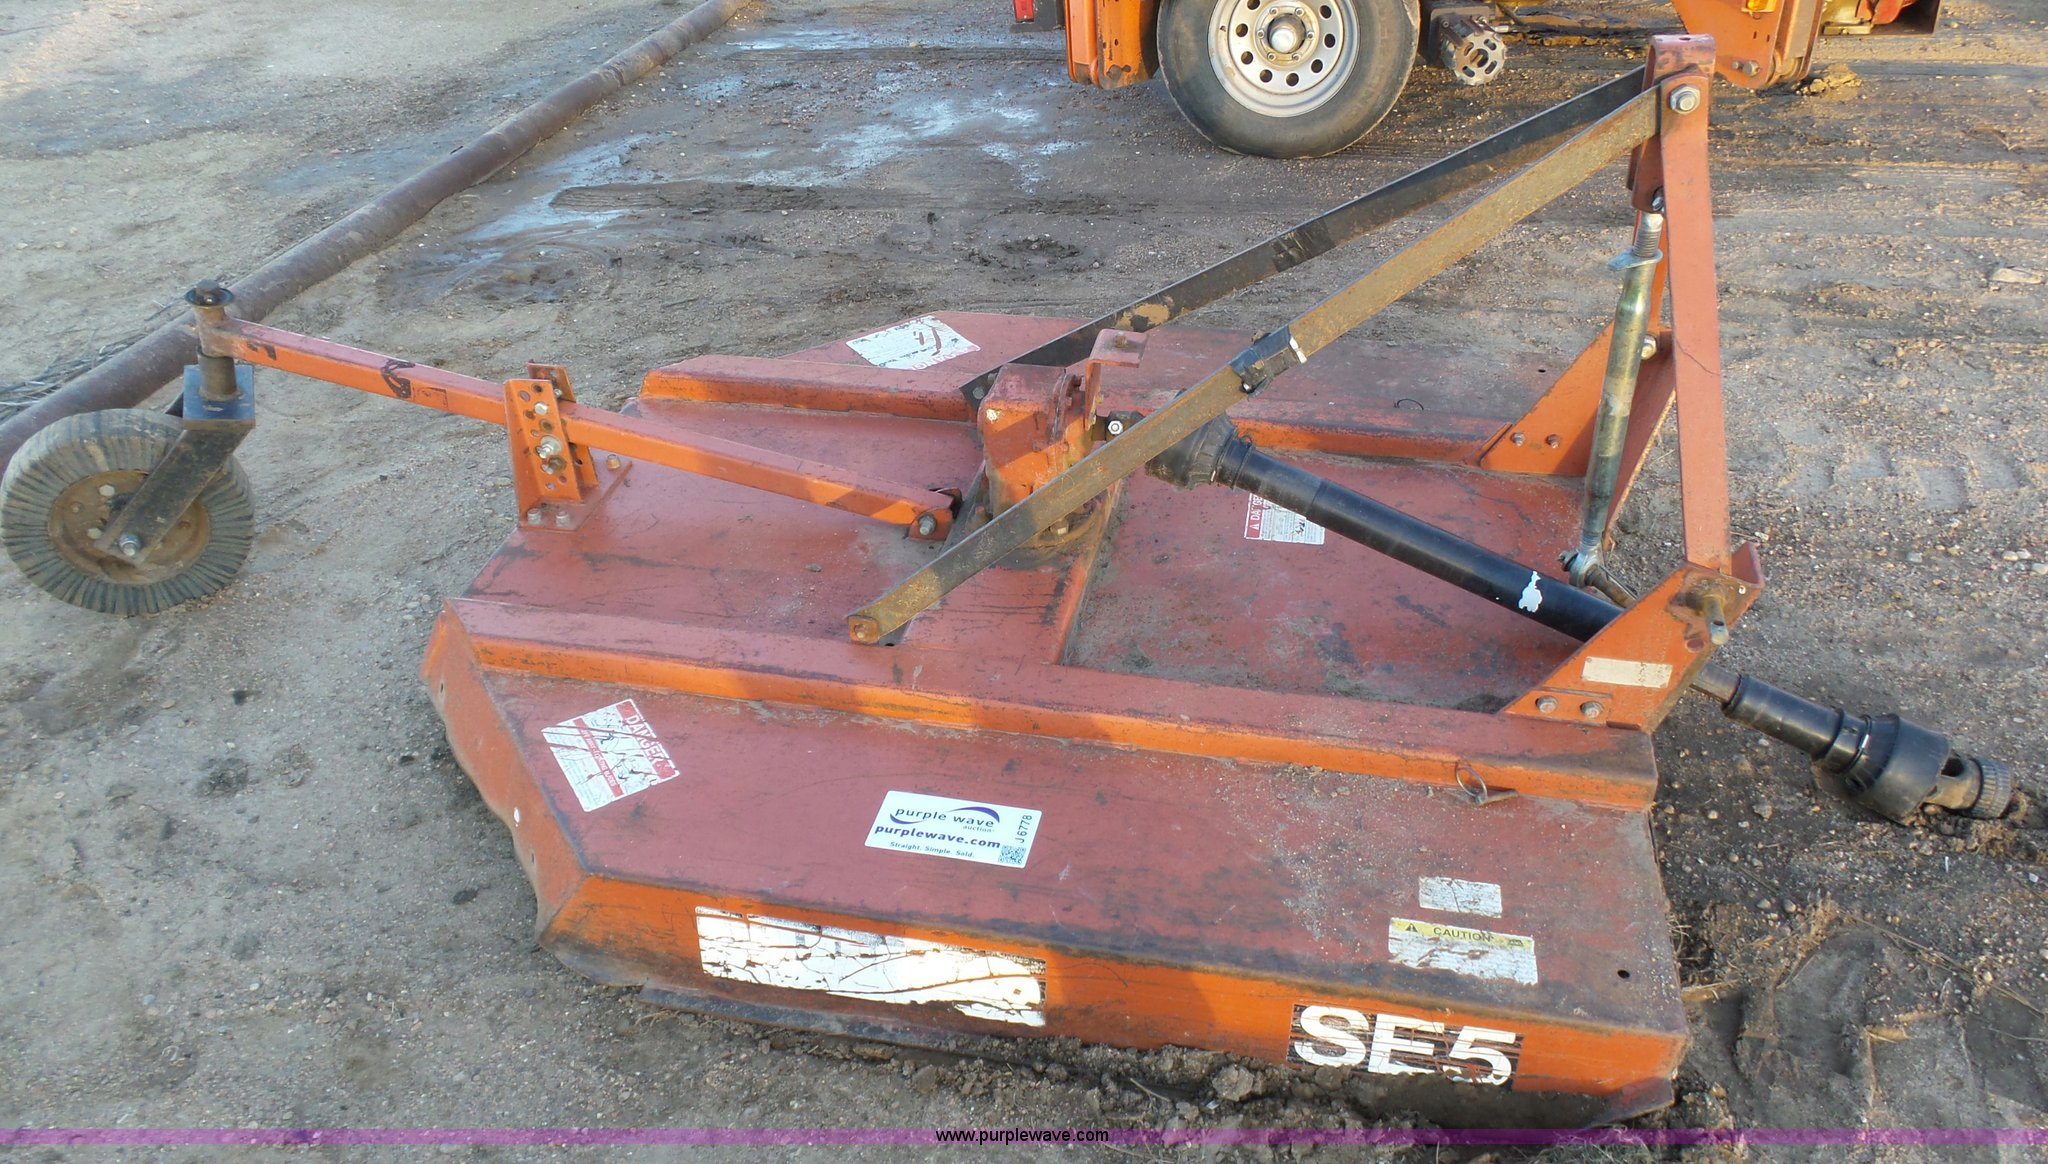 Rhino SE5 rotary mower | Item J6778 | SOLD! March 2 Gilmores